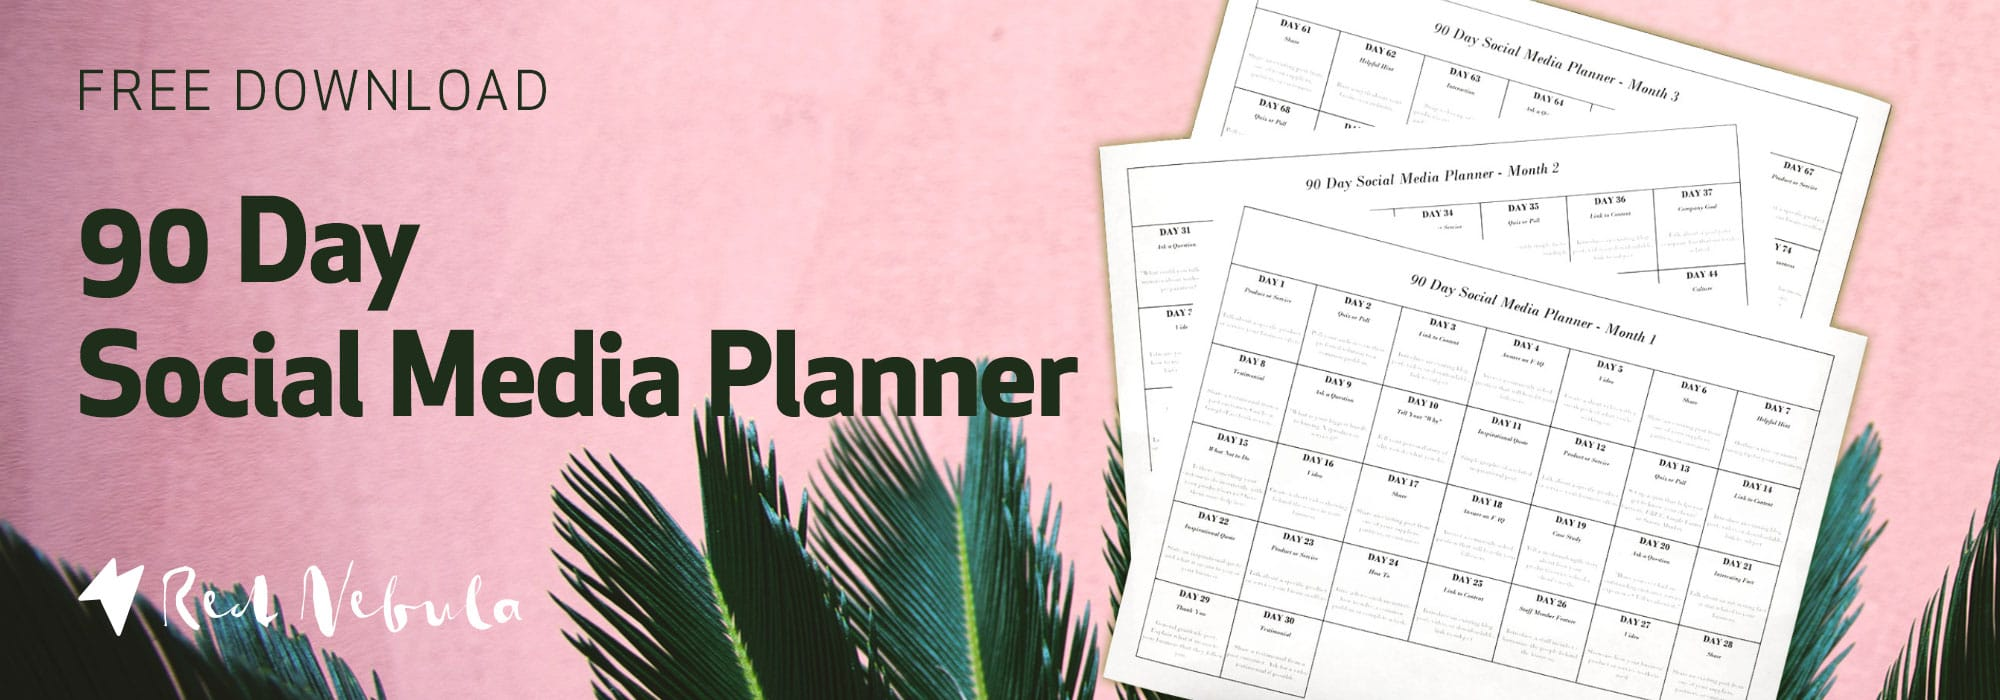 90-day-social-media-planner-graphic-summer-2000x700